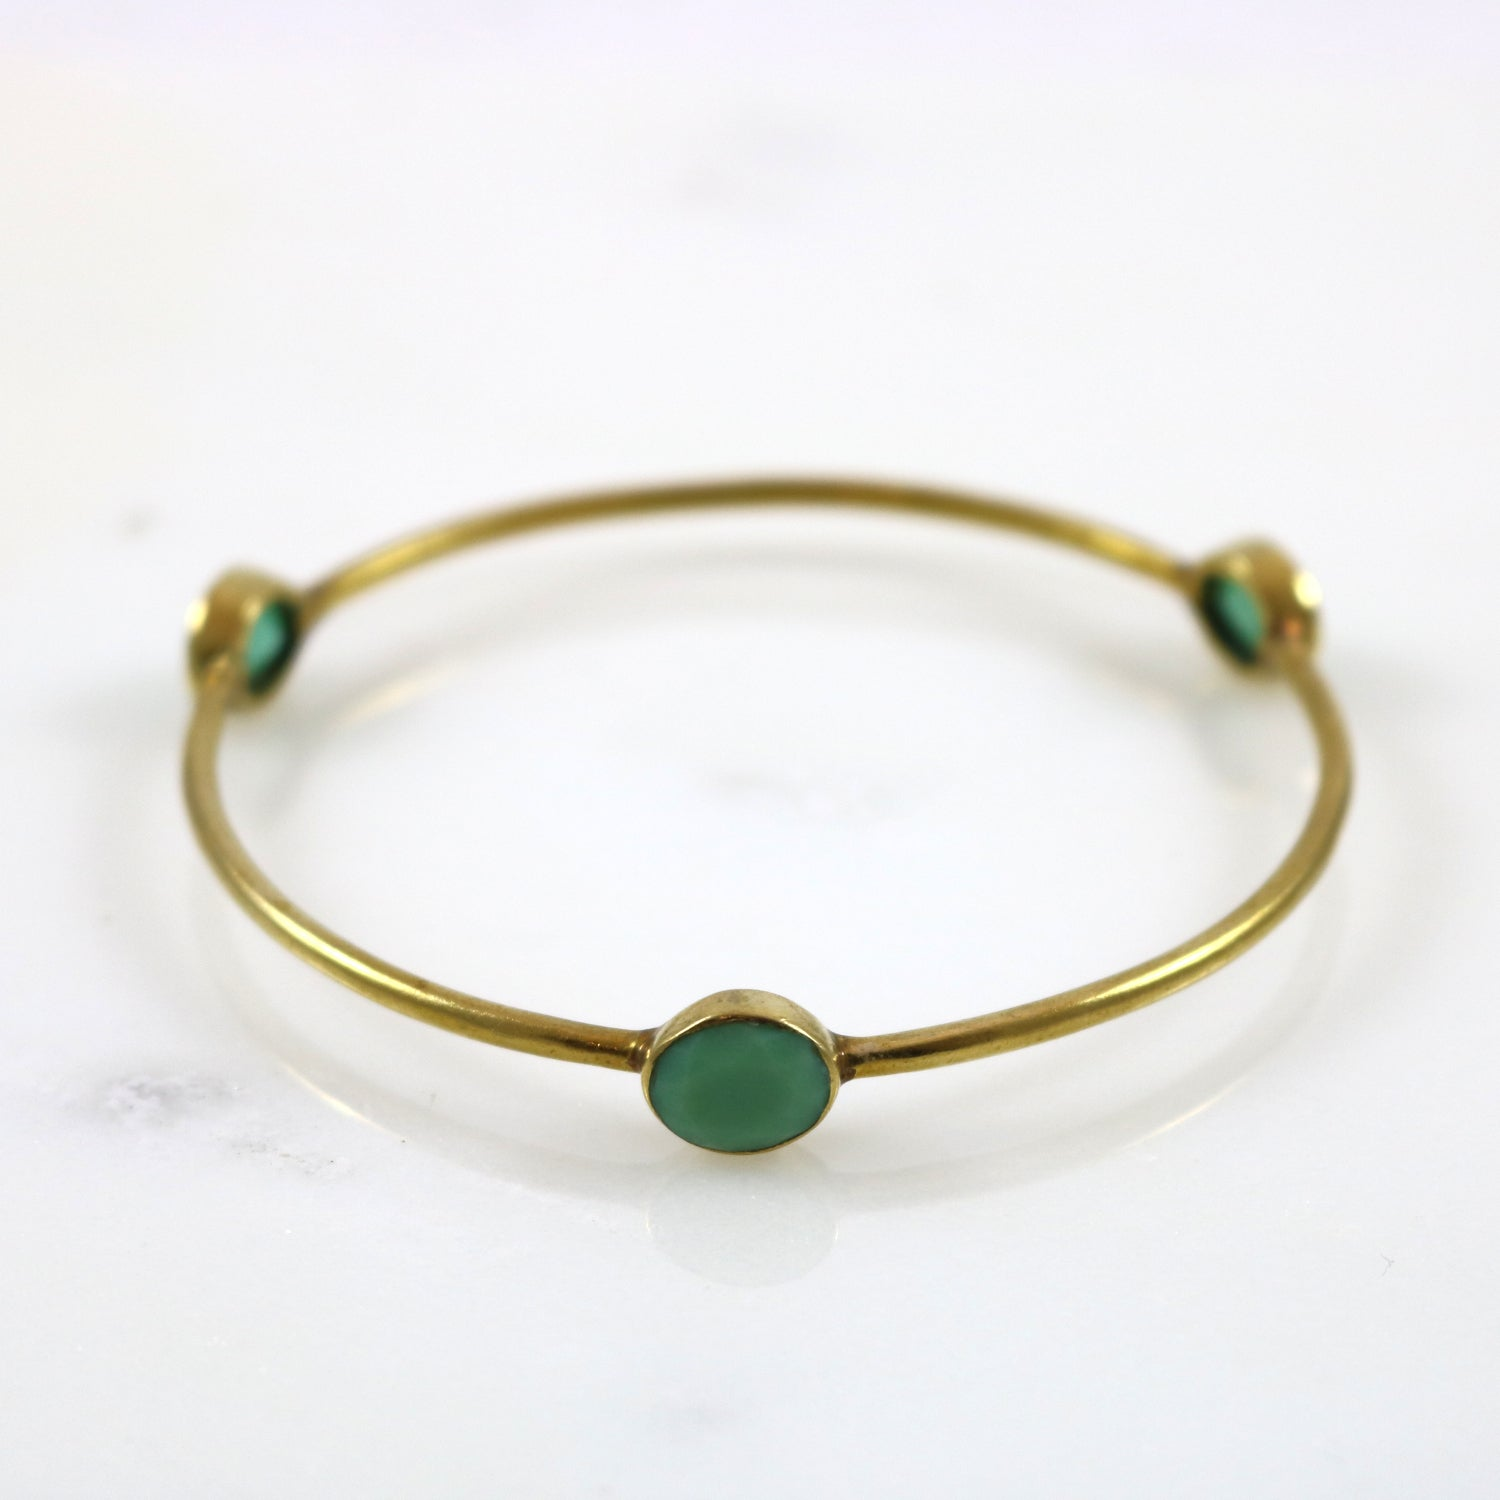 Green Stone Gold Bangle Bracelet